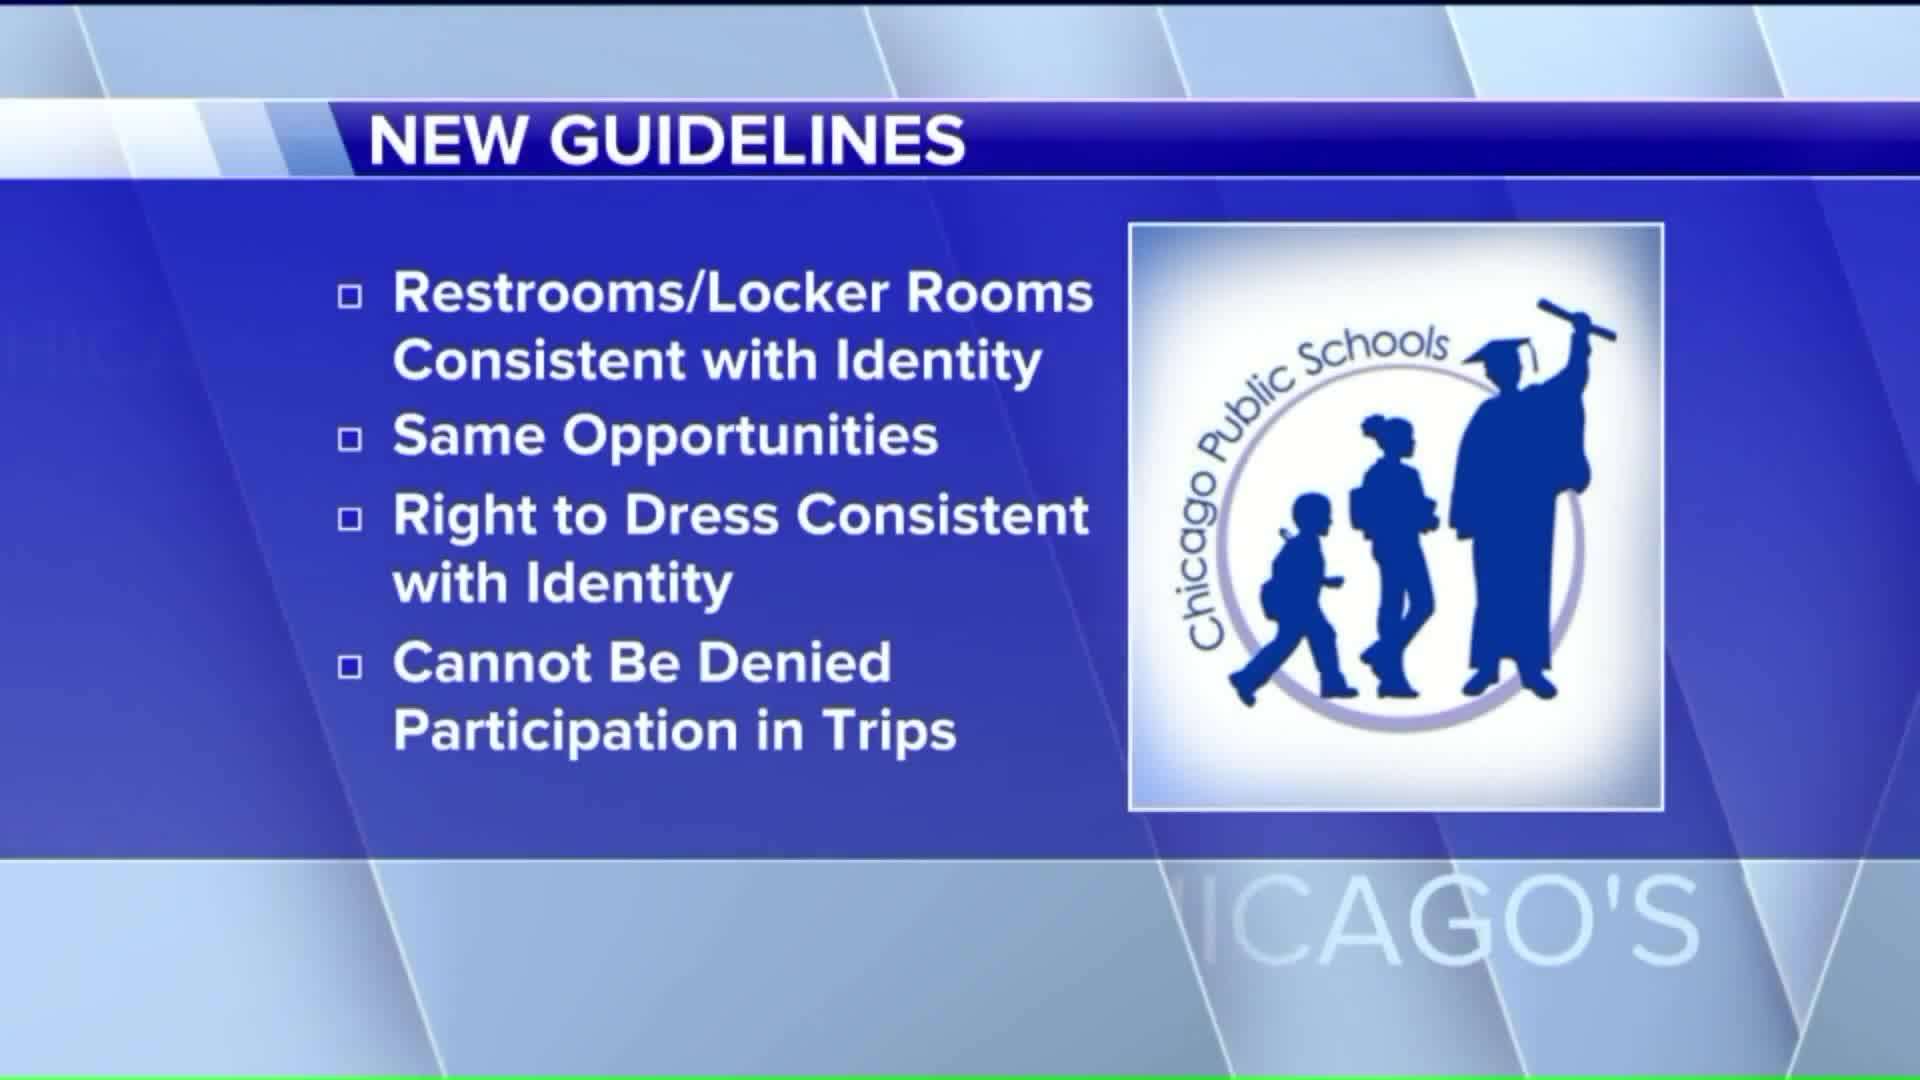 Chicago Public Schools Release New Guidelines To Support Transgender Students